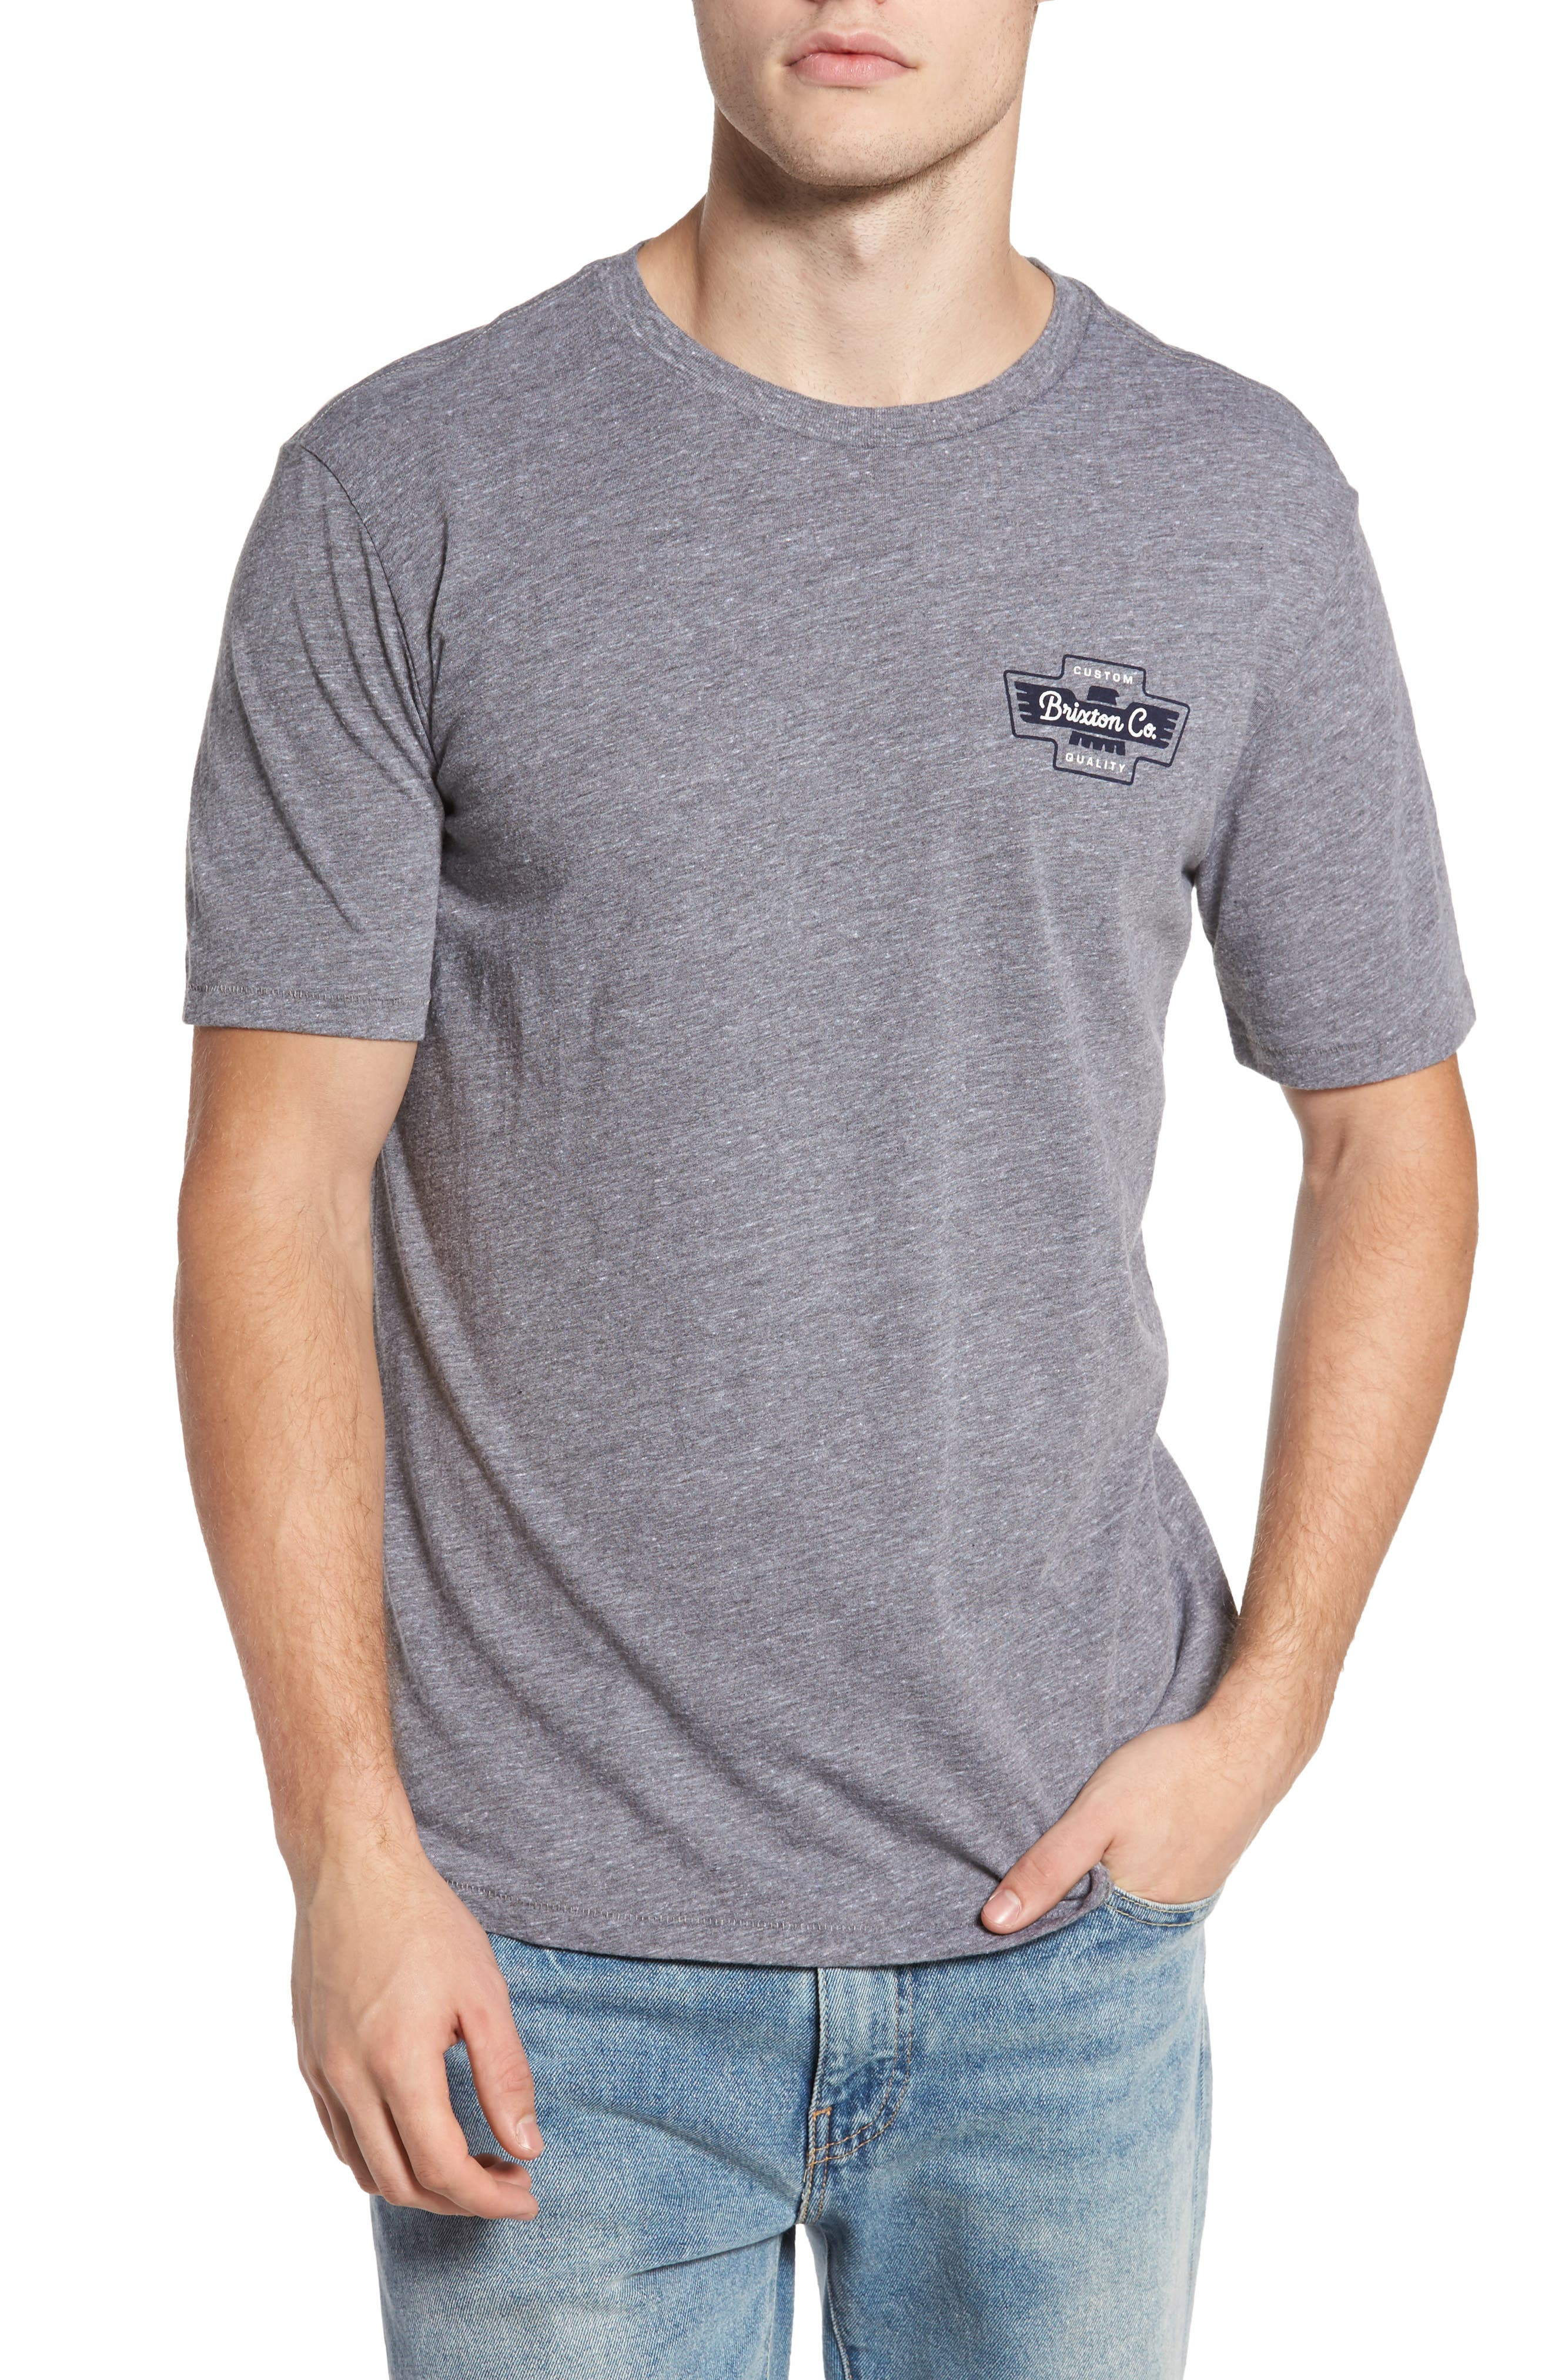 Federal Premium Graphic T-Shirt,                         Main,                         color, Heather Grey